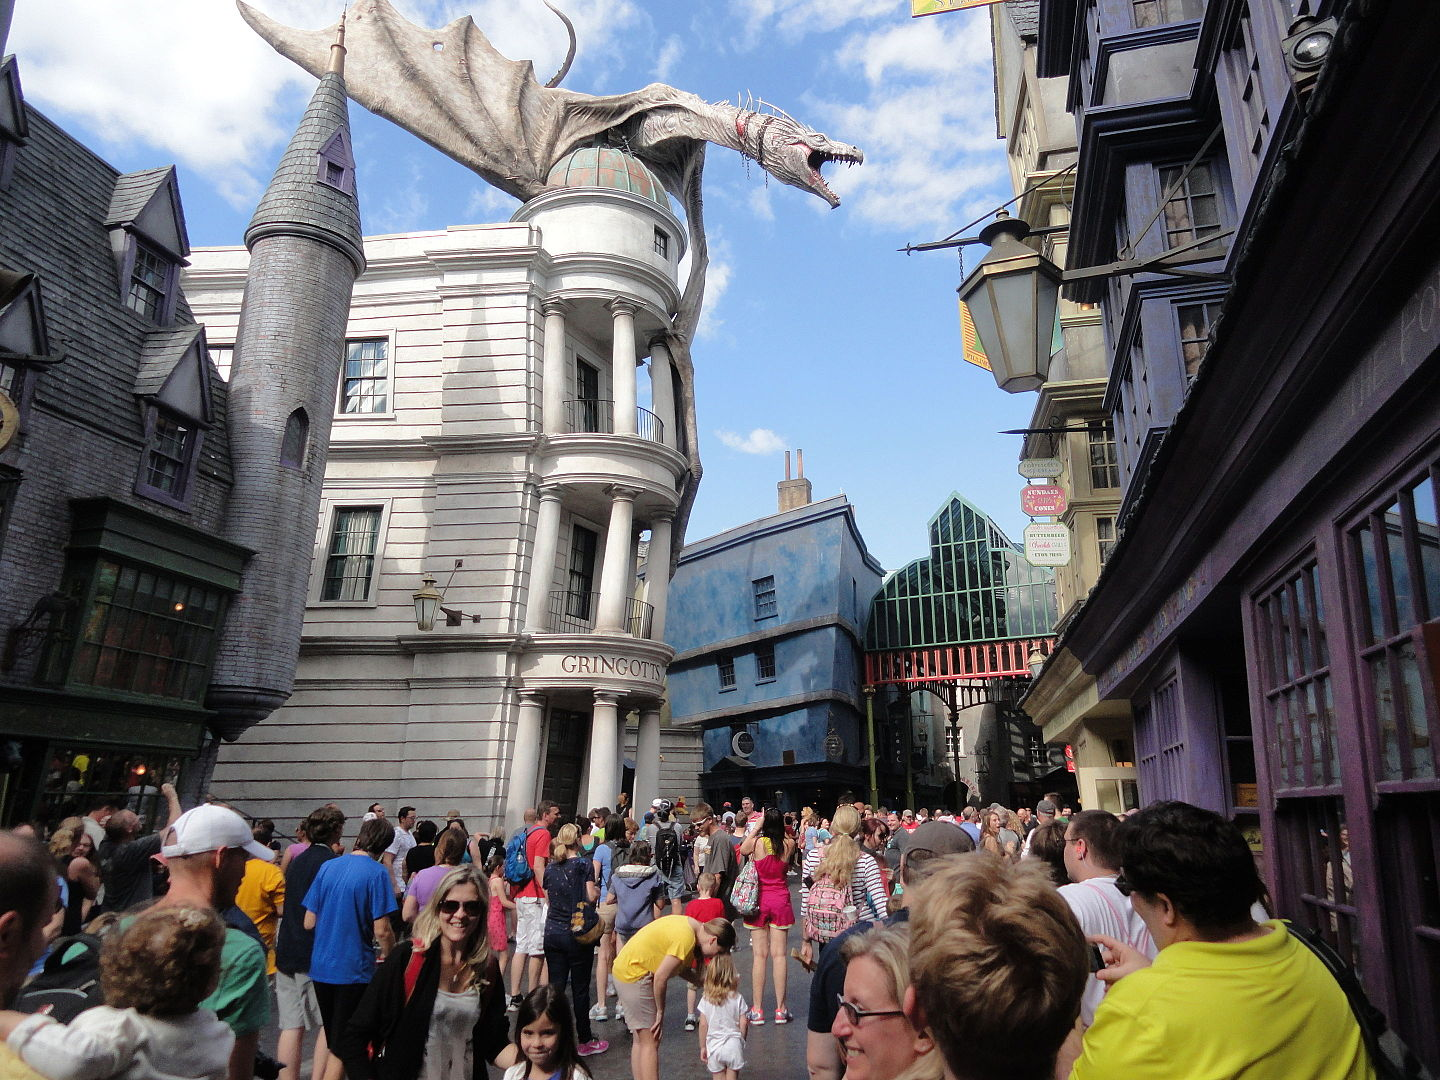 Dragon atop a building in Diagon Alley at Universal Studios Florida